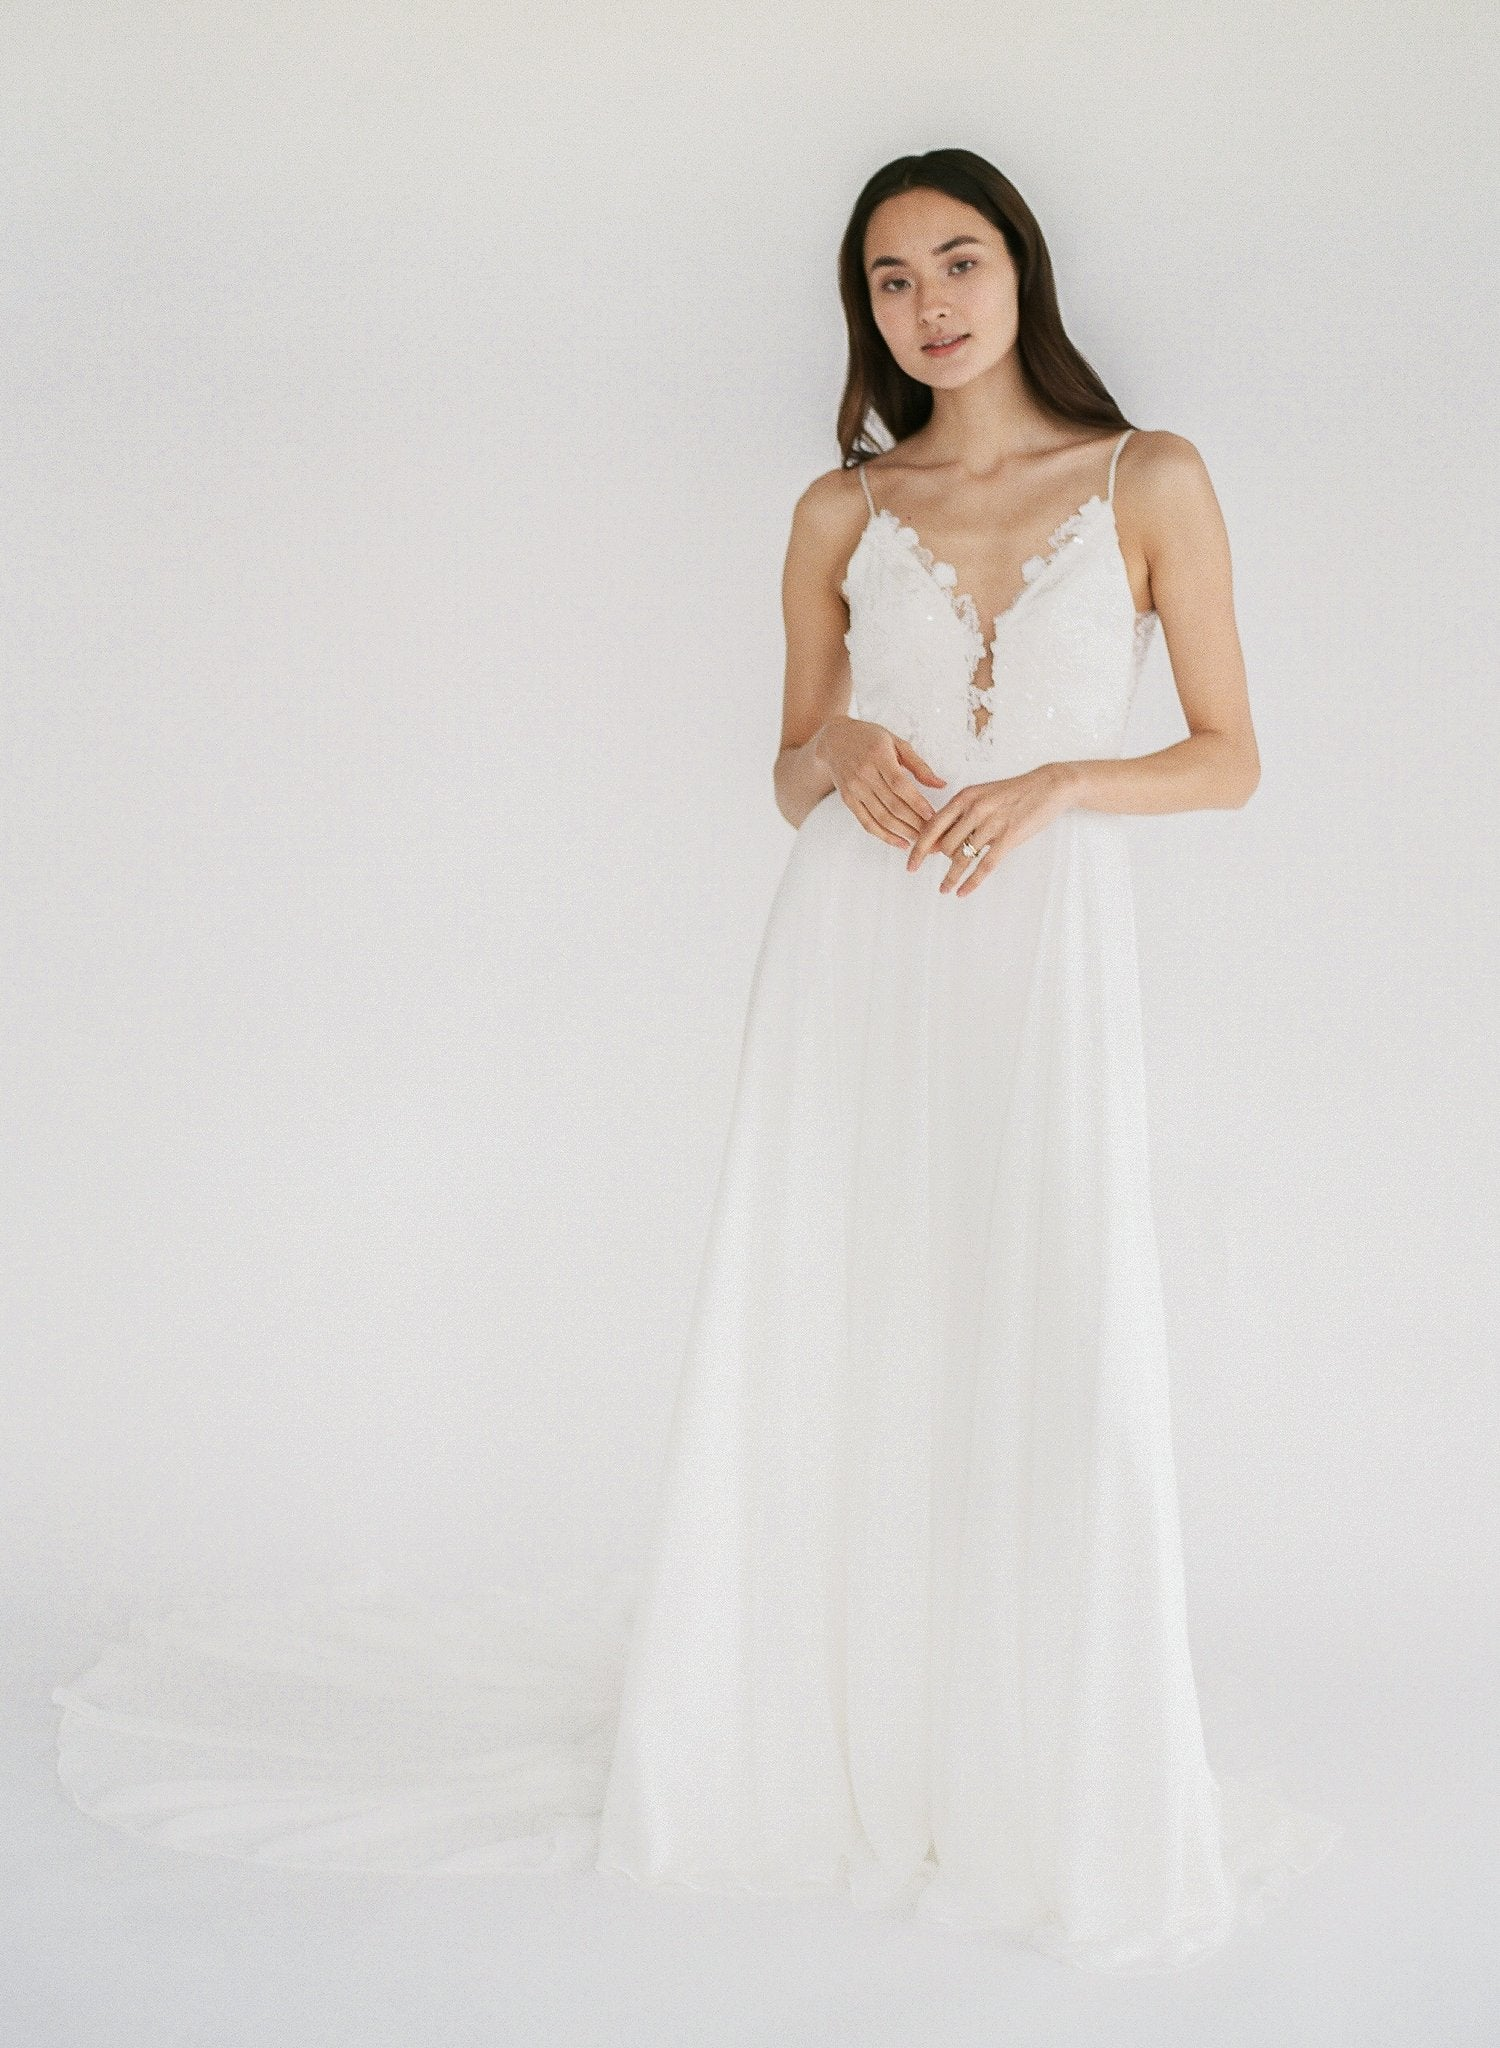 Flowy beach wedding dress with lace appliqué, a low back, and plunging neckline